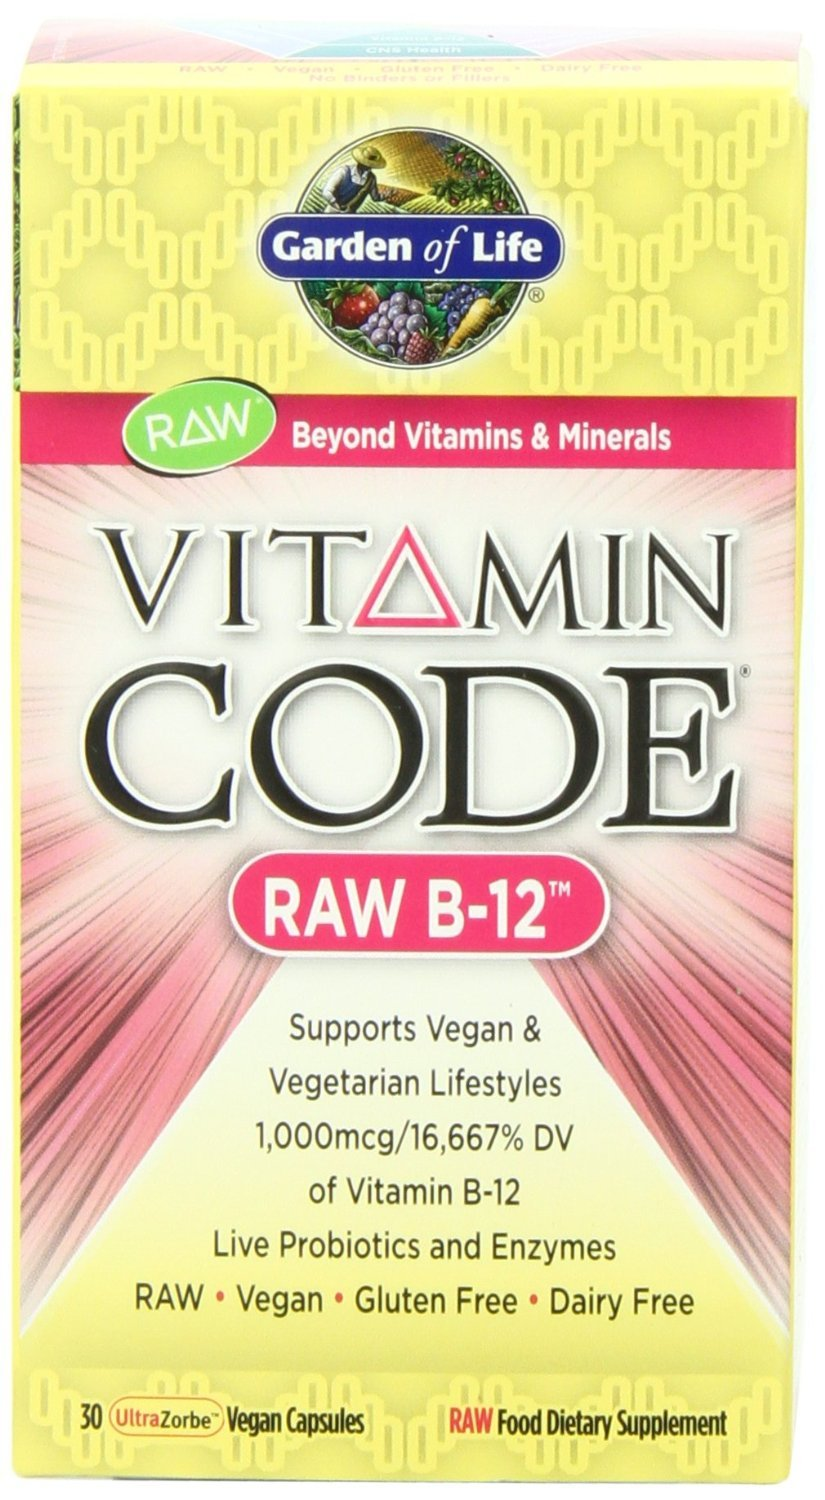 Garden of Life Vitamin Code Raw B-12, 30 Capsules 2-Pack